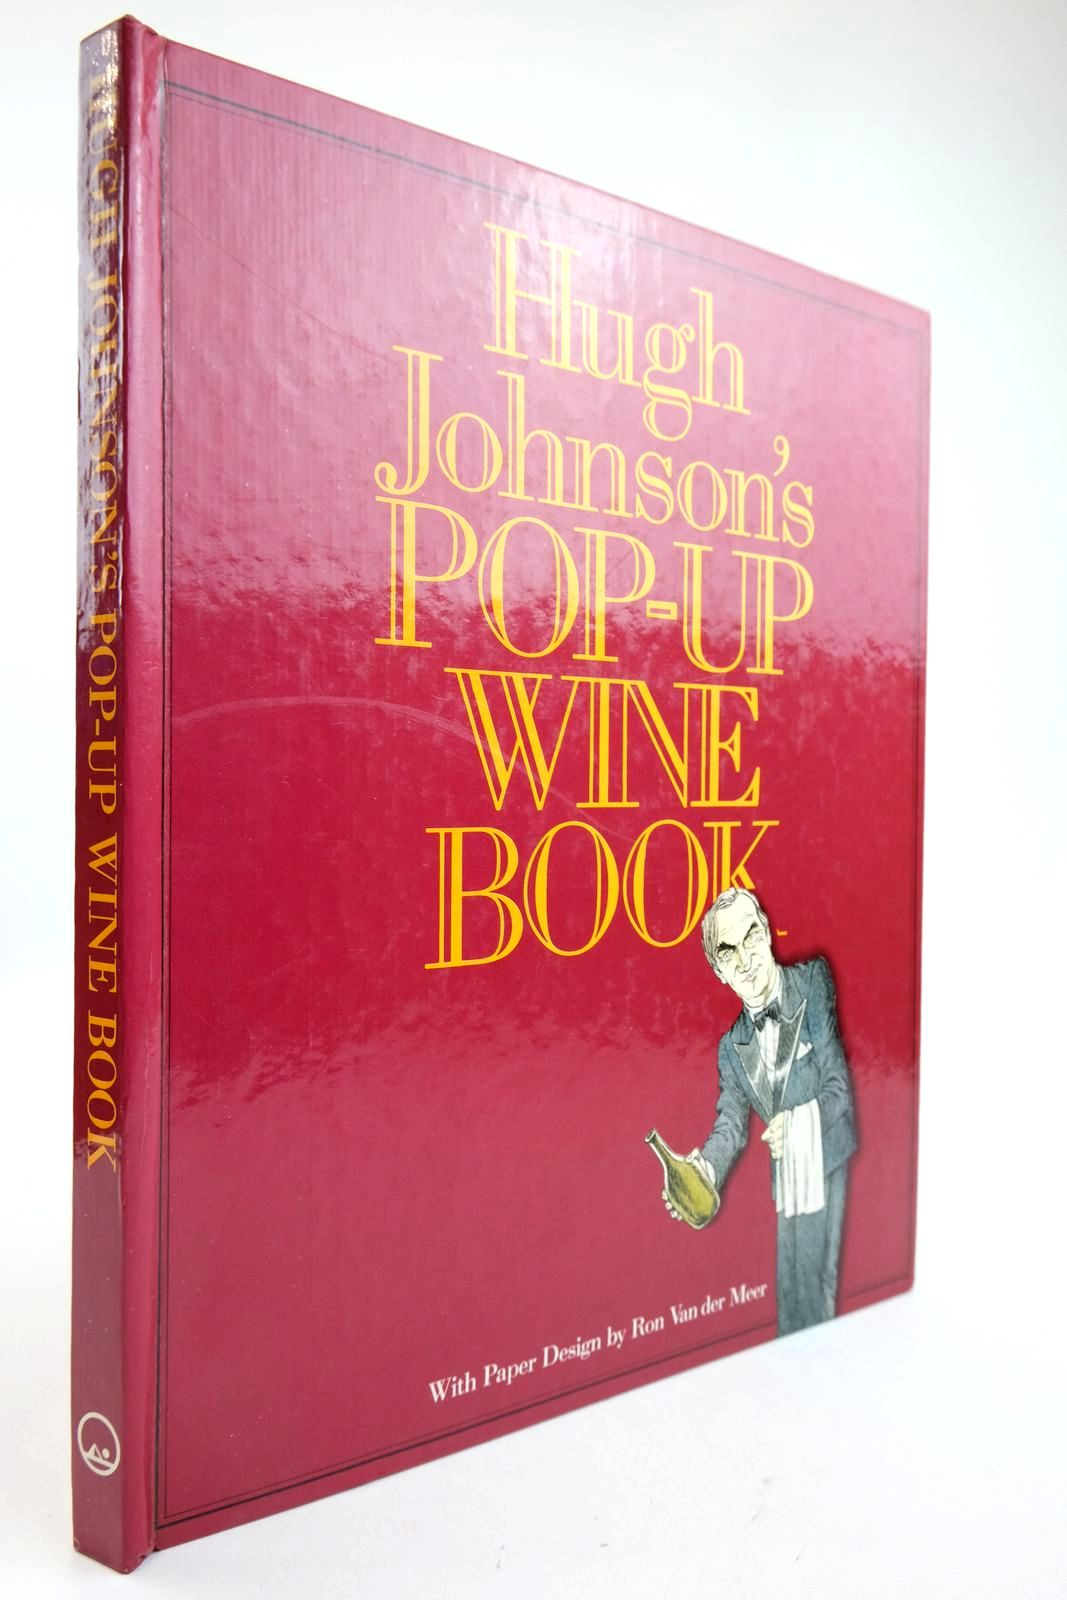 Photo of HUGH JOHNSON'S POP-UP WINE BOOK written by Johnson, Hugh published by Pyramid Books, Octopus Books Ltd. (STOCK CODE: 2132958)  for sale by Stella & Rose's Books